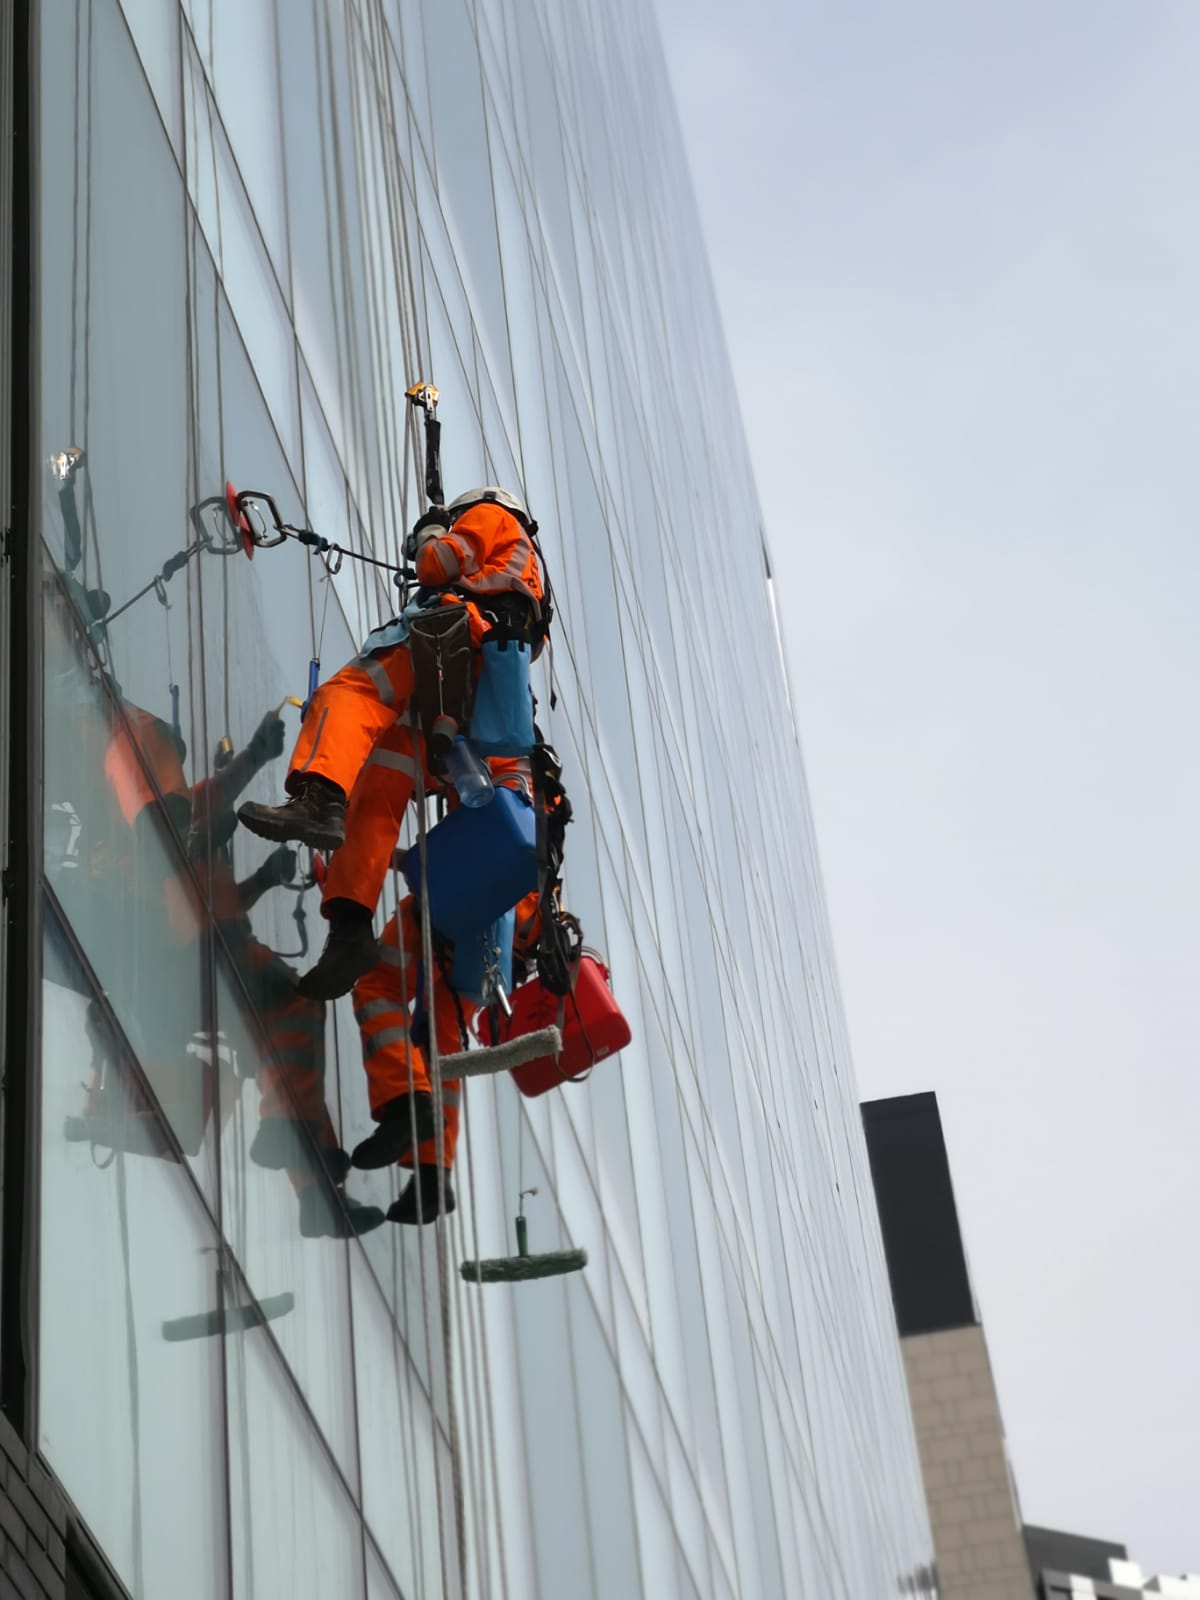 Rope Access Glazing Cleaning